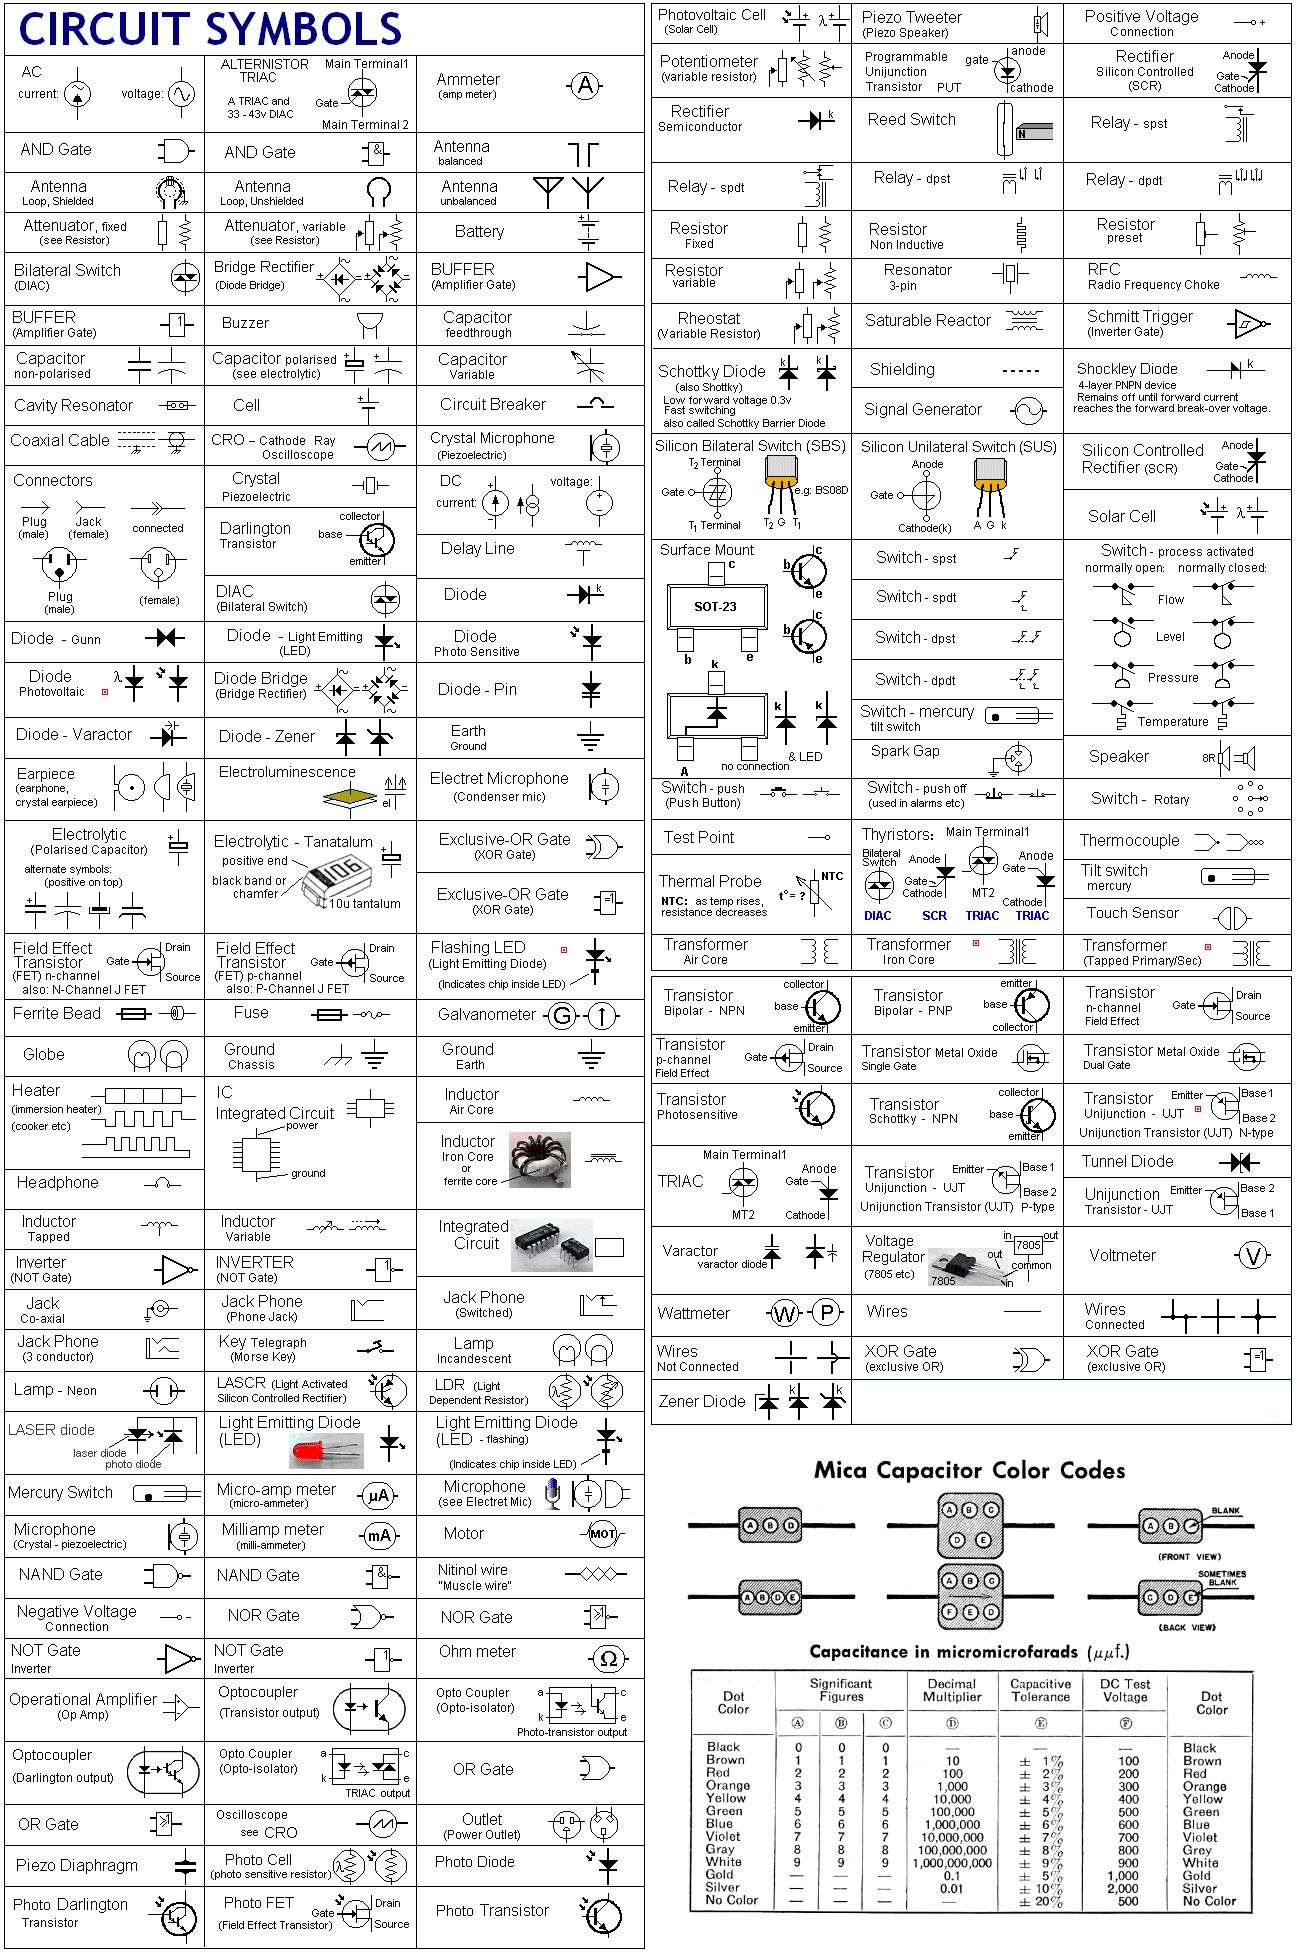 6c64fb84c8e162b28334051891c290f4 schematic symbols chart electric circuit symbols a considerably wiring diagram symbols at edmiracle.co